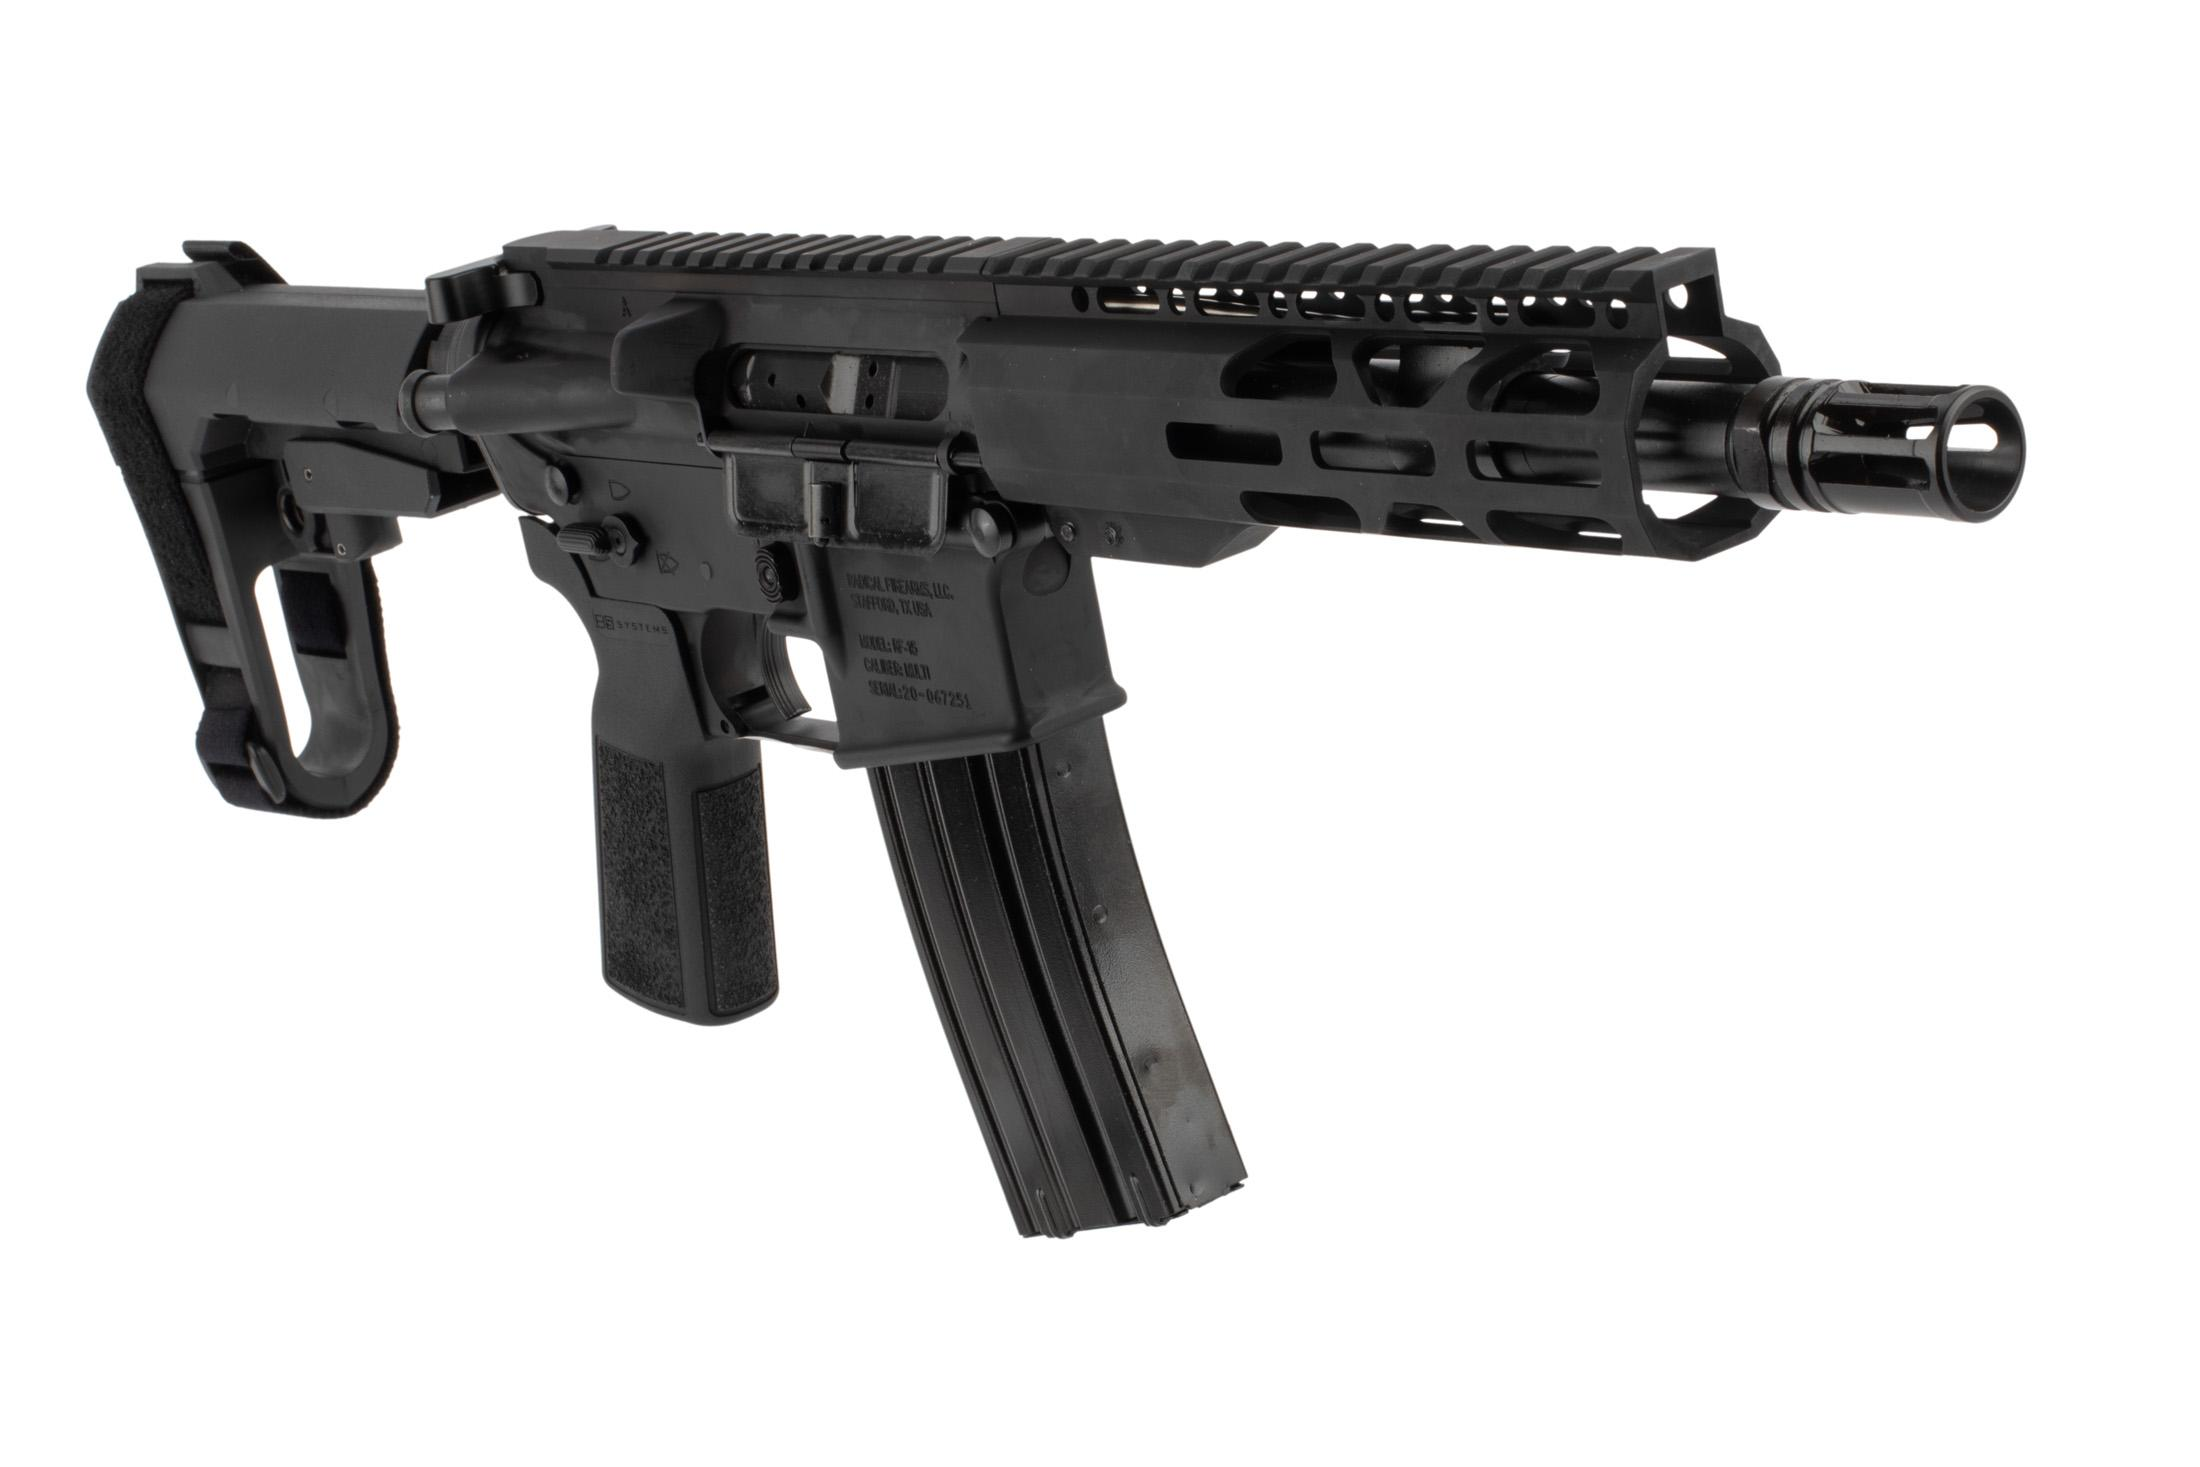 The Radical Firearms .300 blackout pistol comes with an A2 flash hider and pistol length gas system